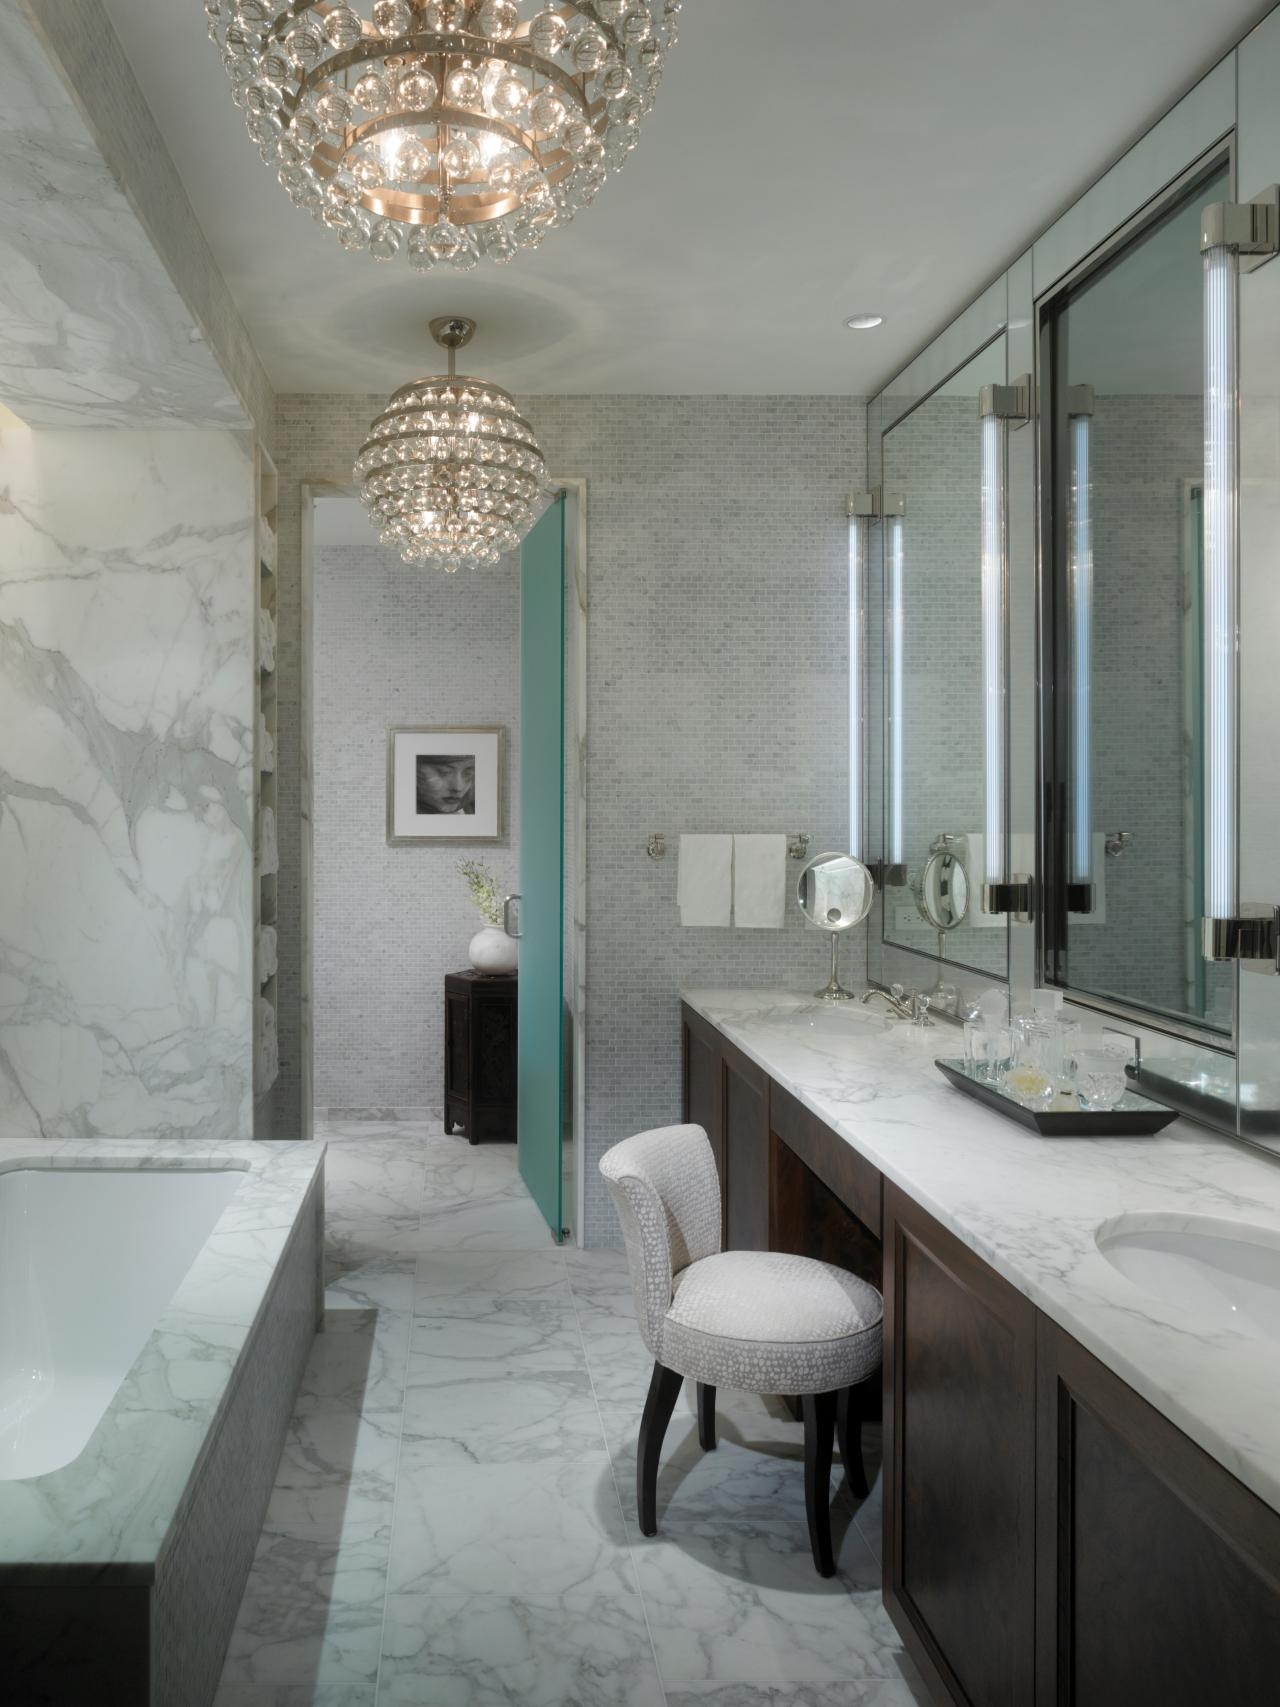 Bathroom Chandelier Lighting Bathroom Decorating Tips And Ideas Throughout Modern Bathroom Chandelier Lighting (Image 3 of 25)